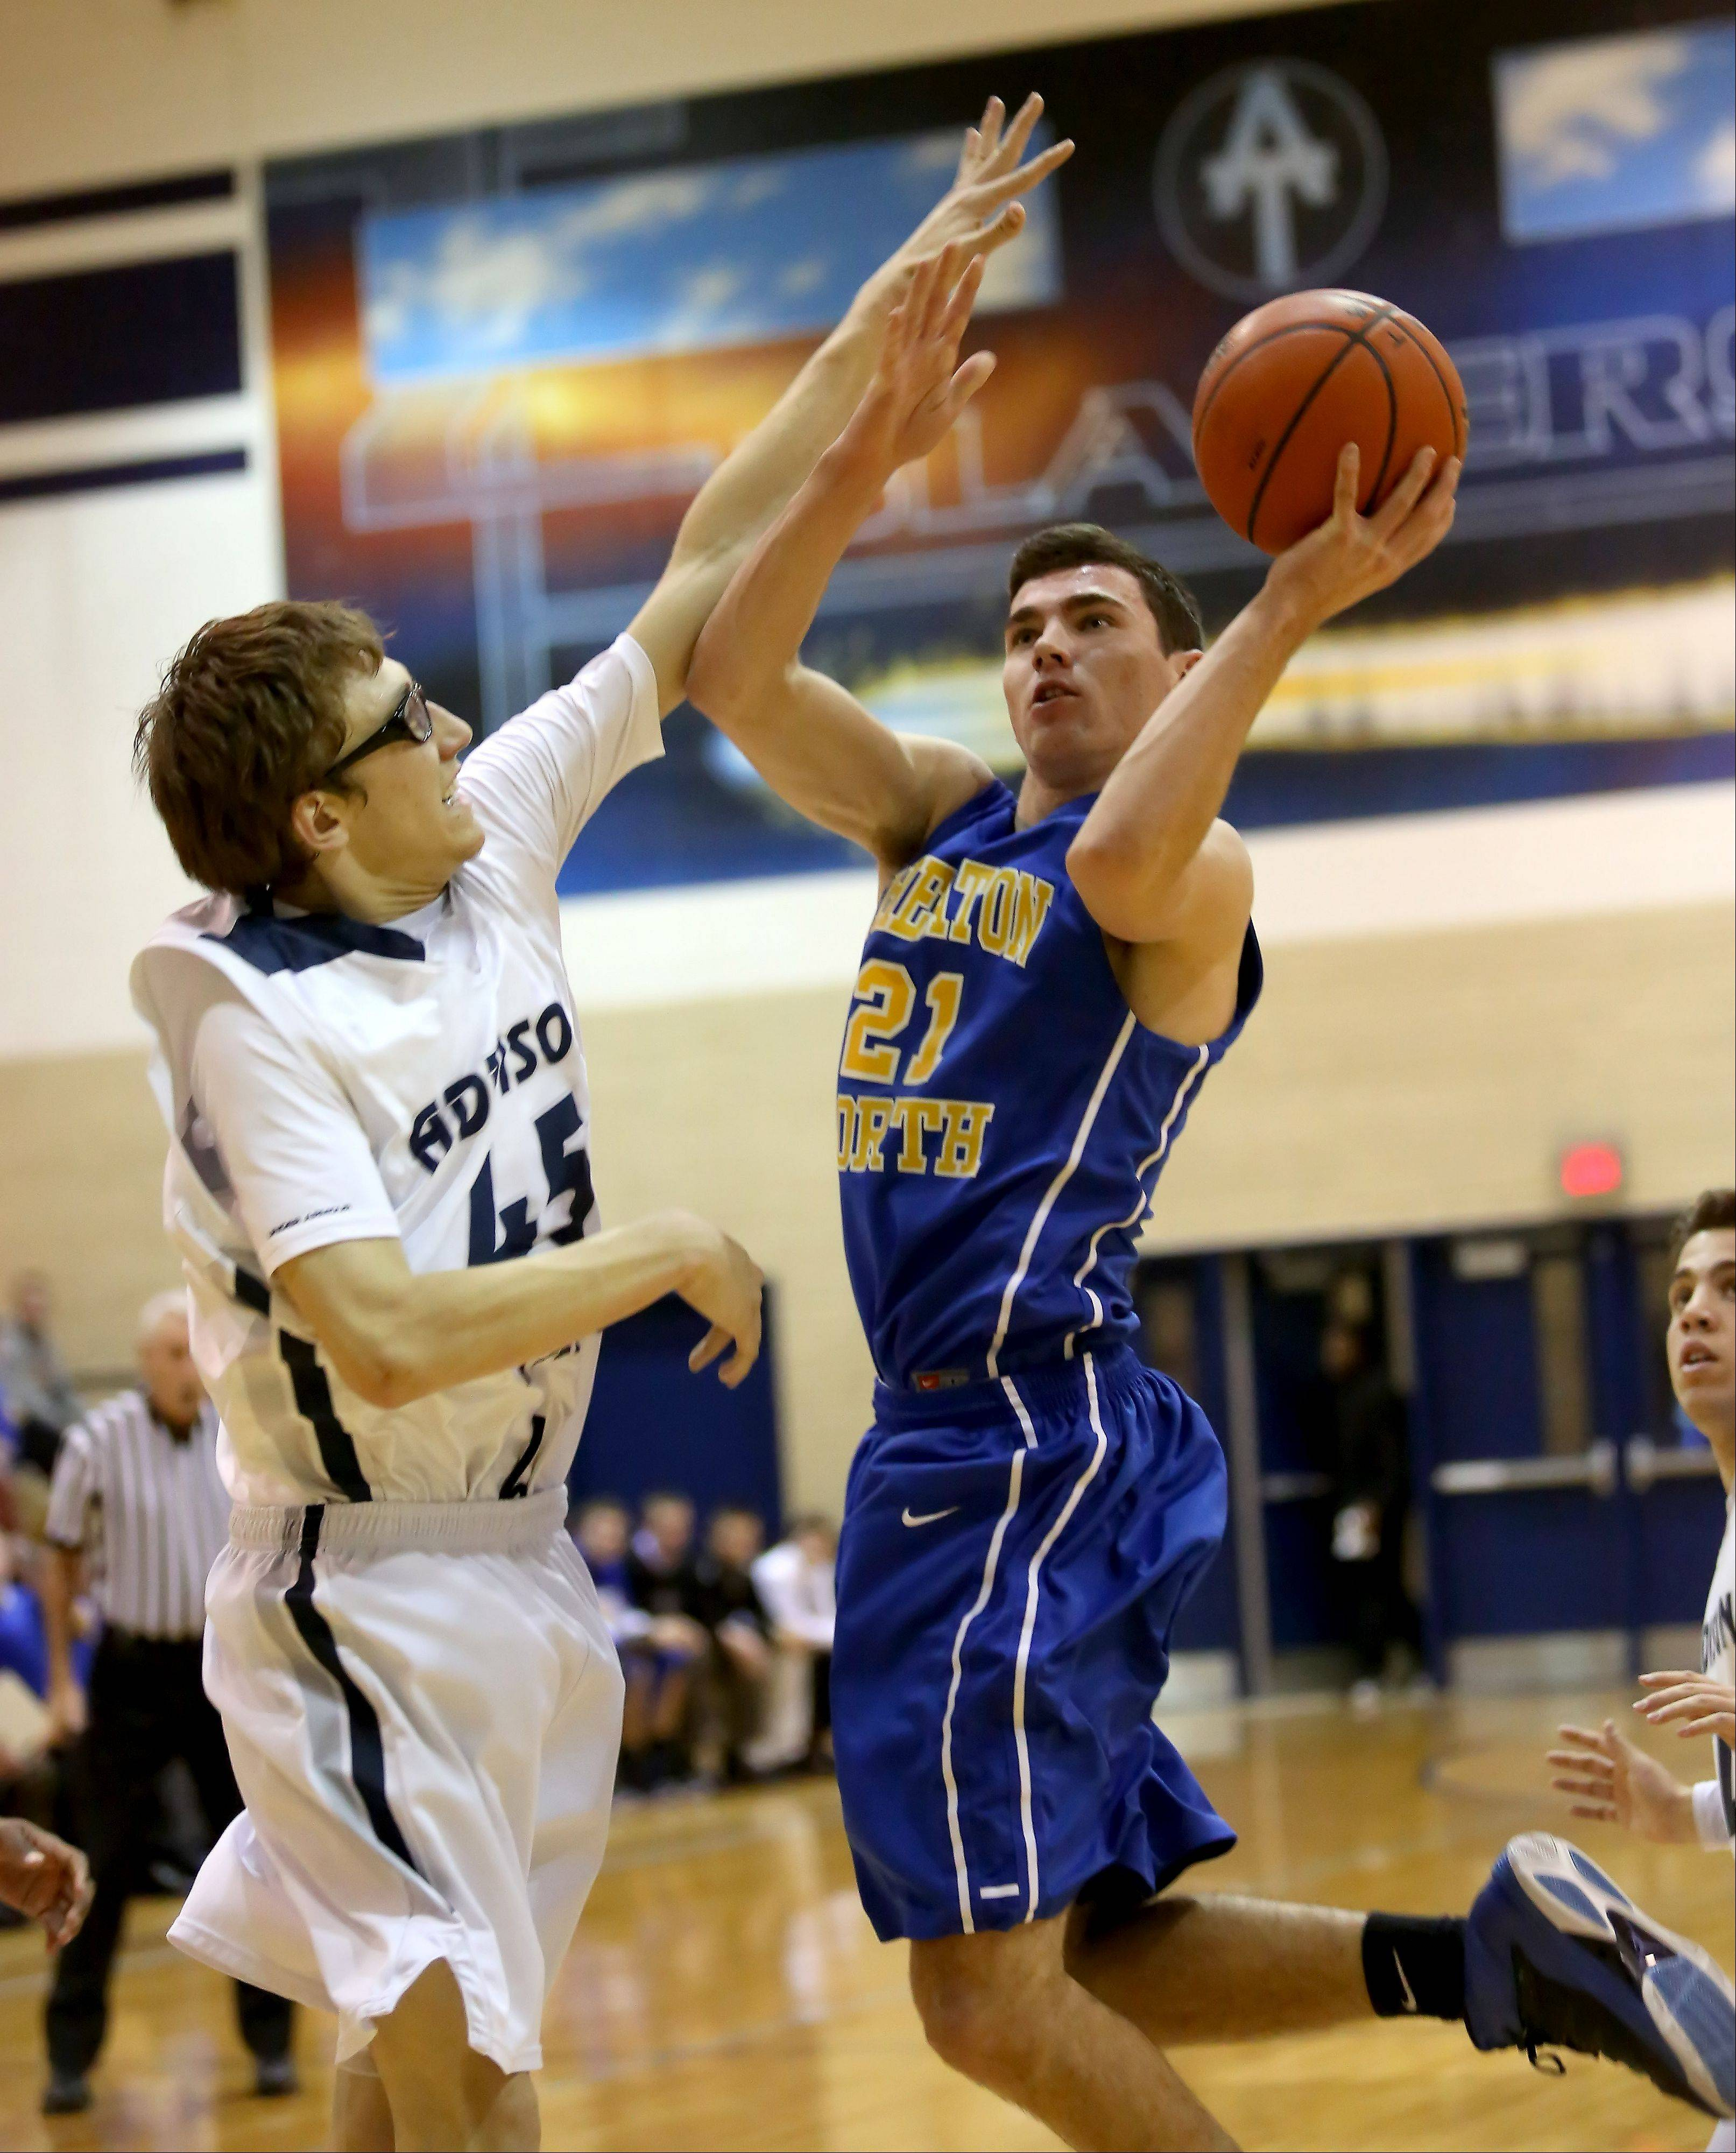 Addison Trail's Joe Villasenor defends, left, as Andrew Slivinski of Wheaton North tries for a basket .